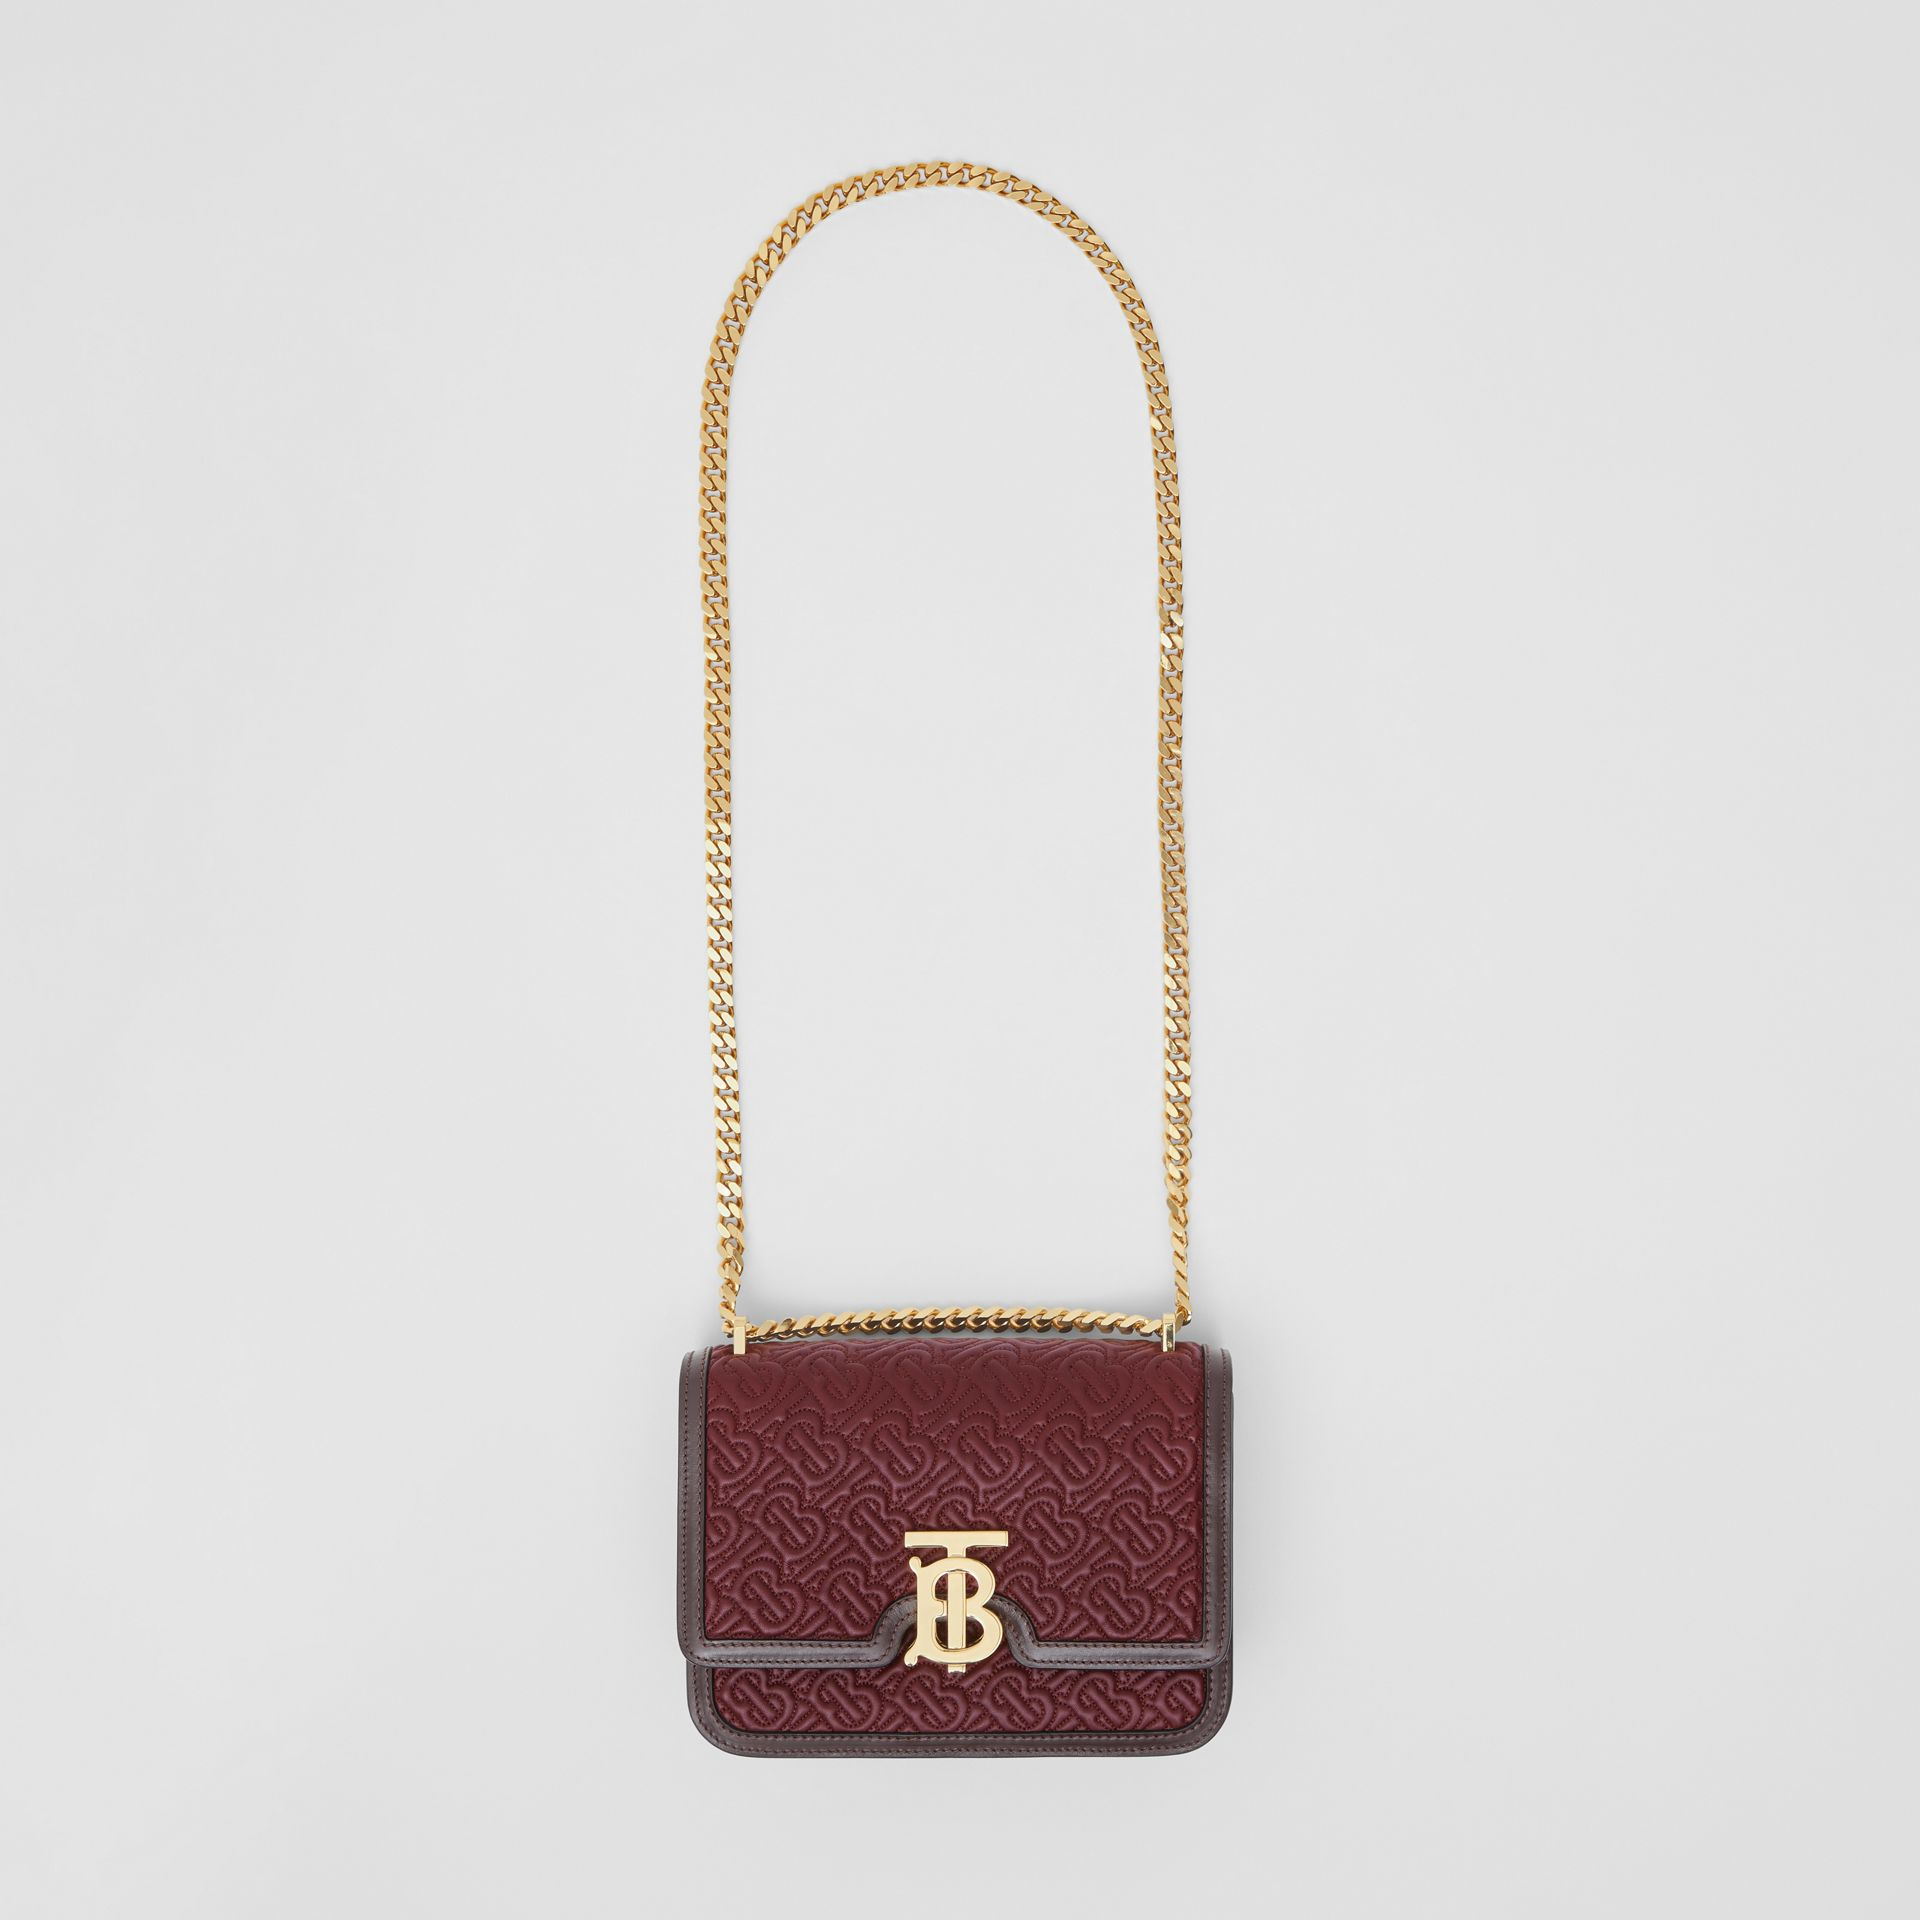 Small Quilted Monogram Lambskin TB Bag in Oxblood - Women | Burberry - gallery image 3